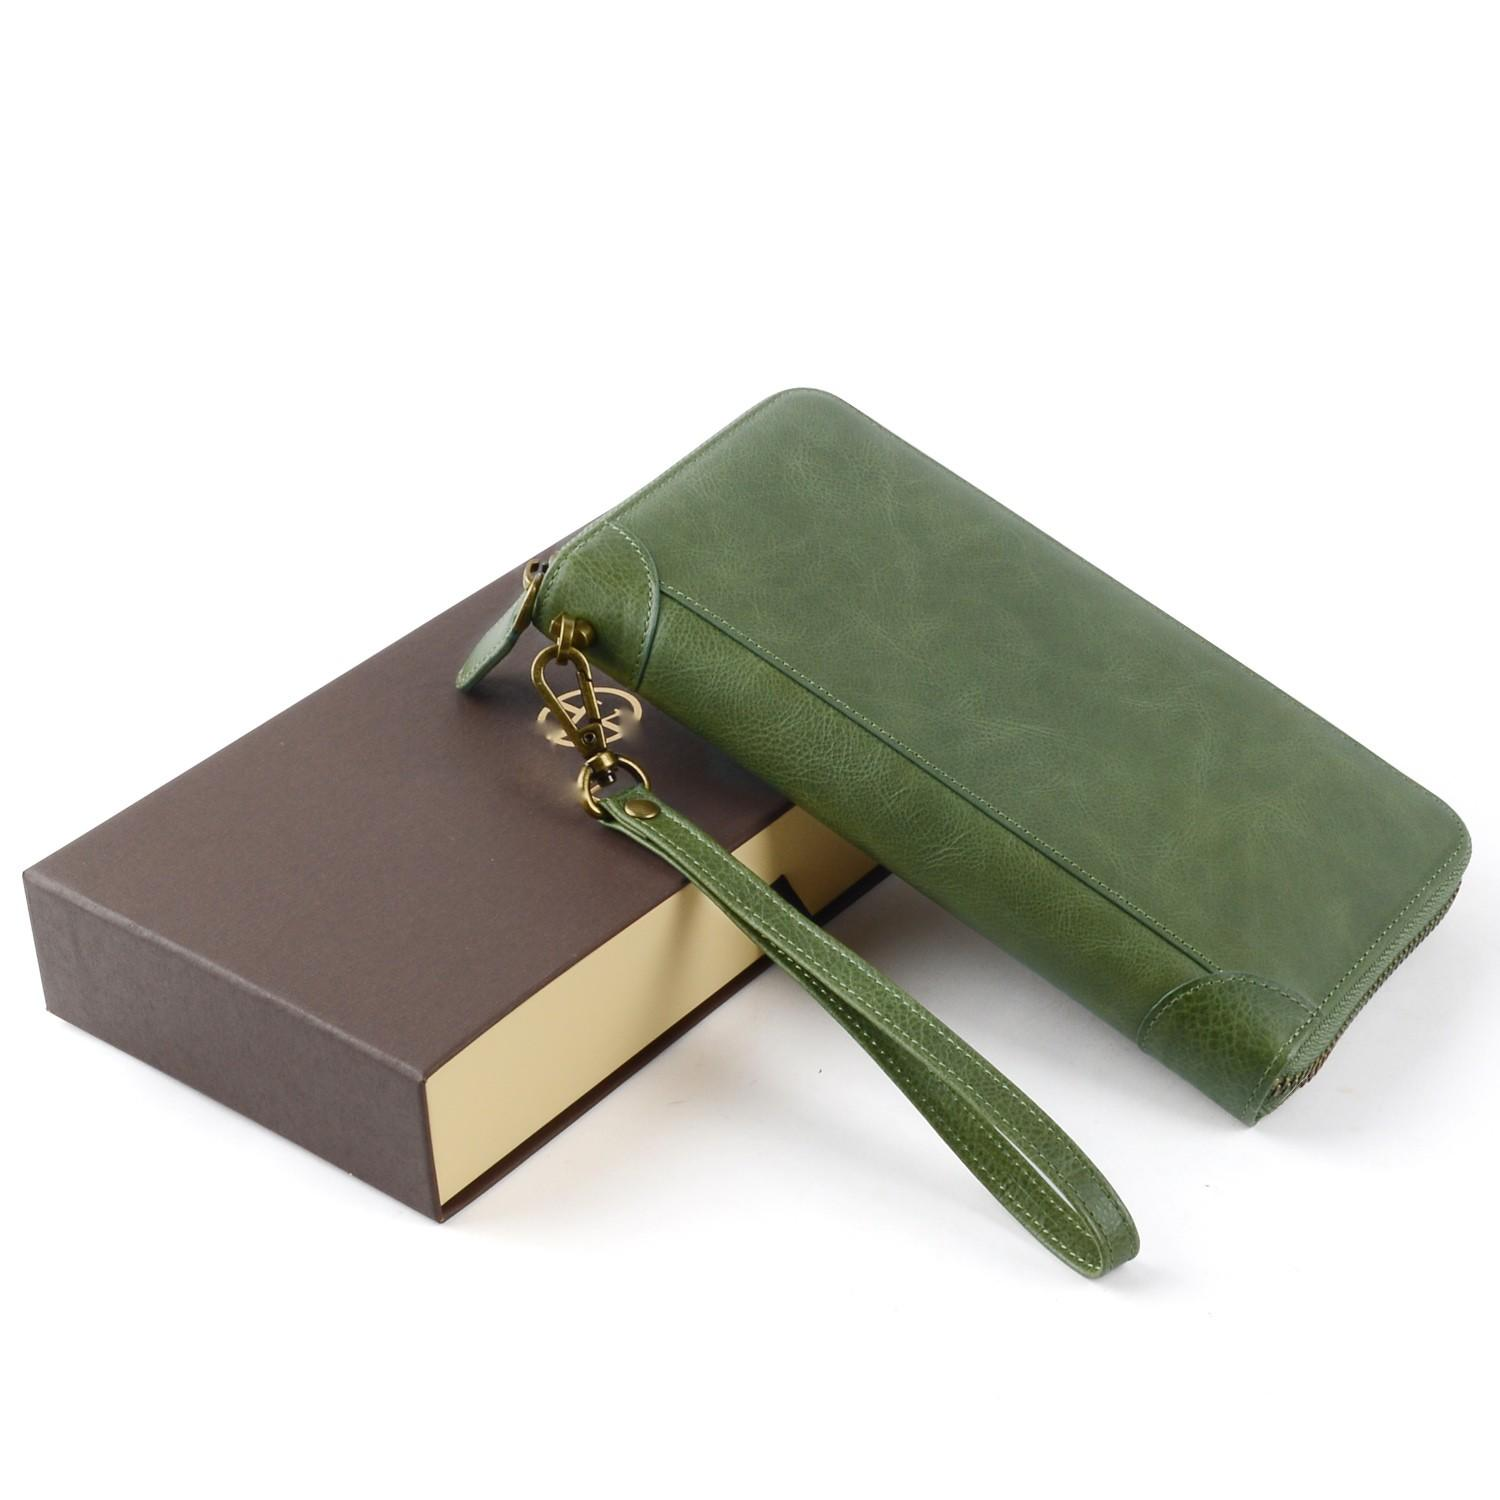 AIVI leather credit card wallet supply for ipone 6/6plus